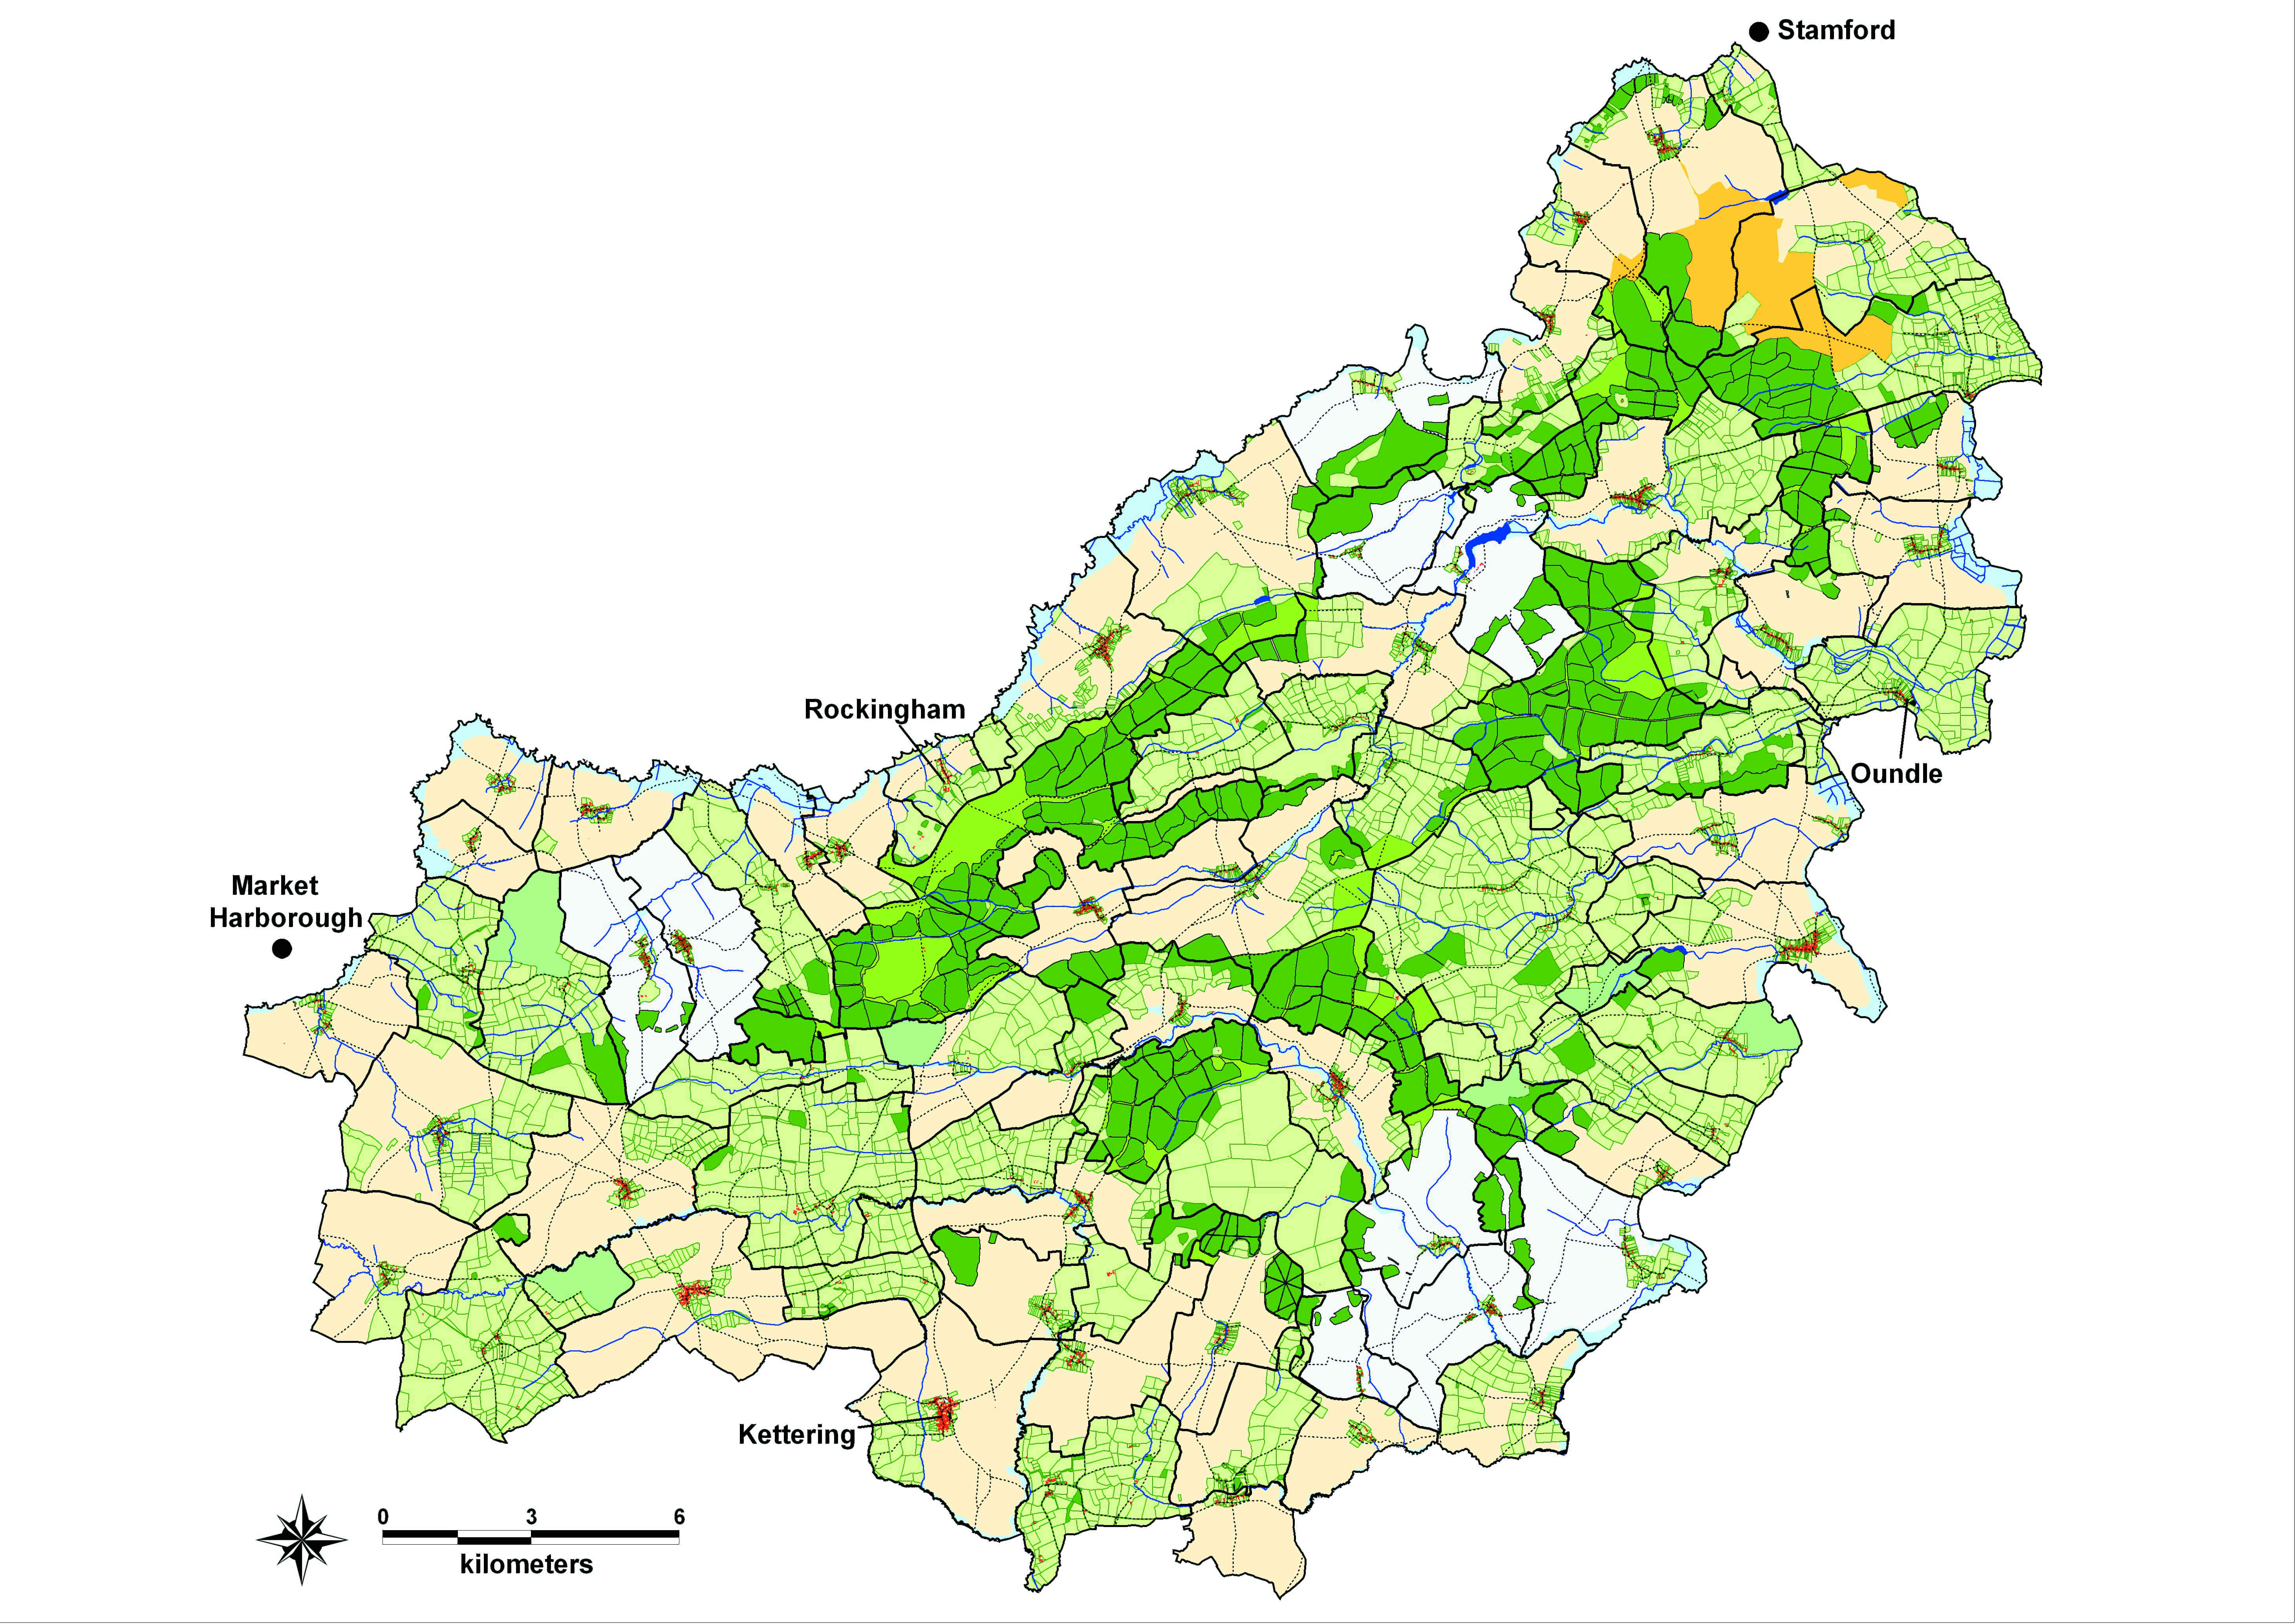 A map showing the types of land in a region. Open field and forest predominate, with some areas of township and a small amount of heath in the north east.